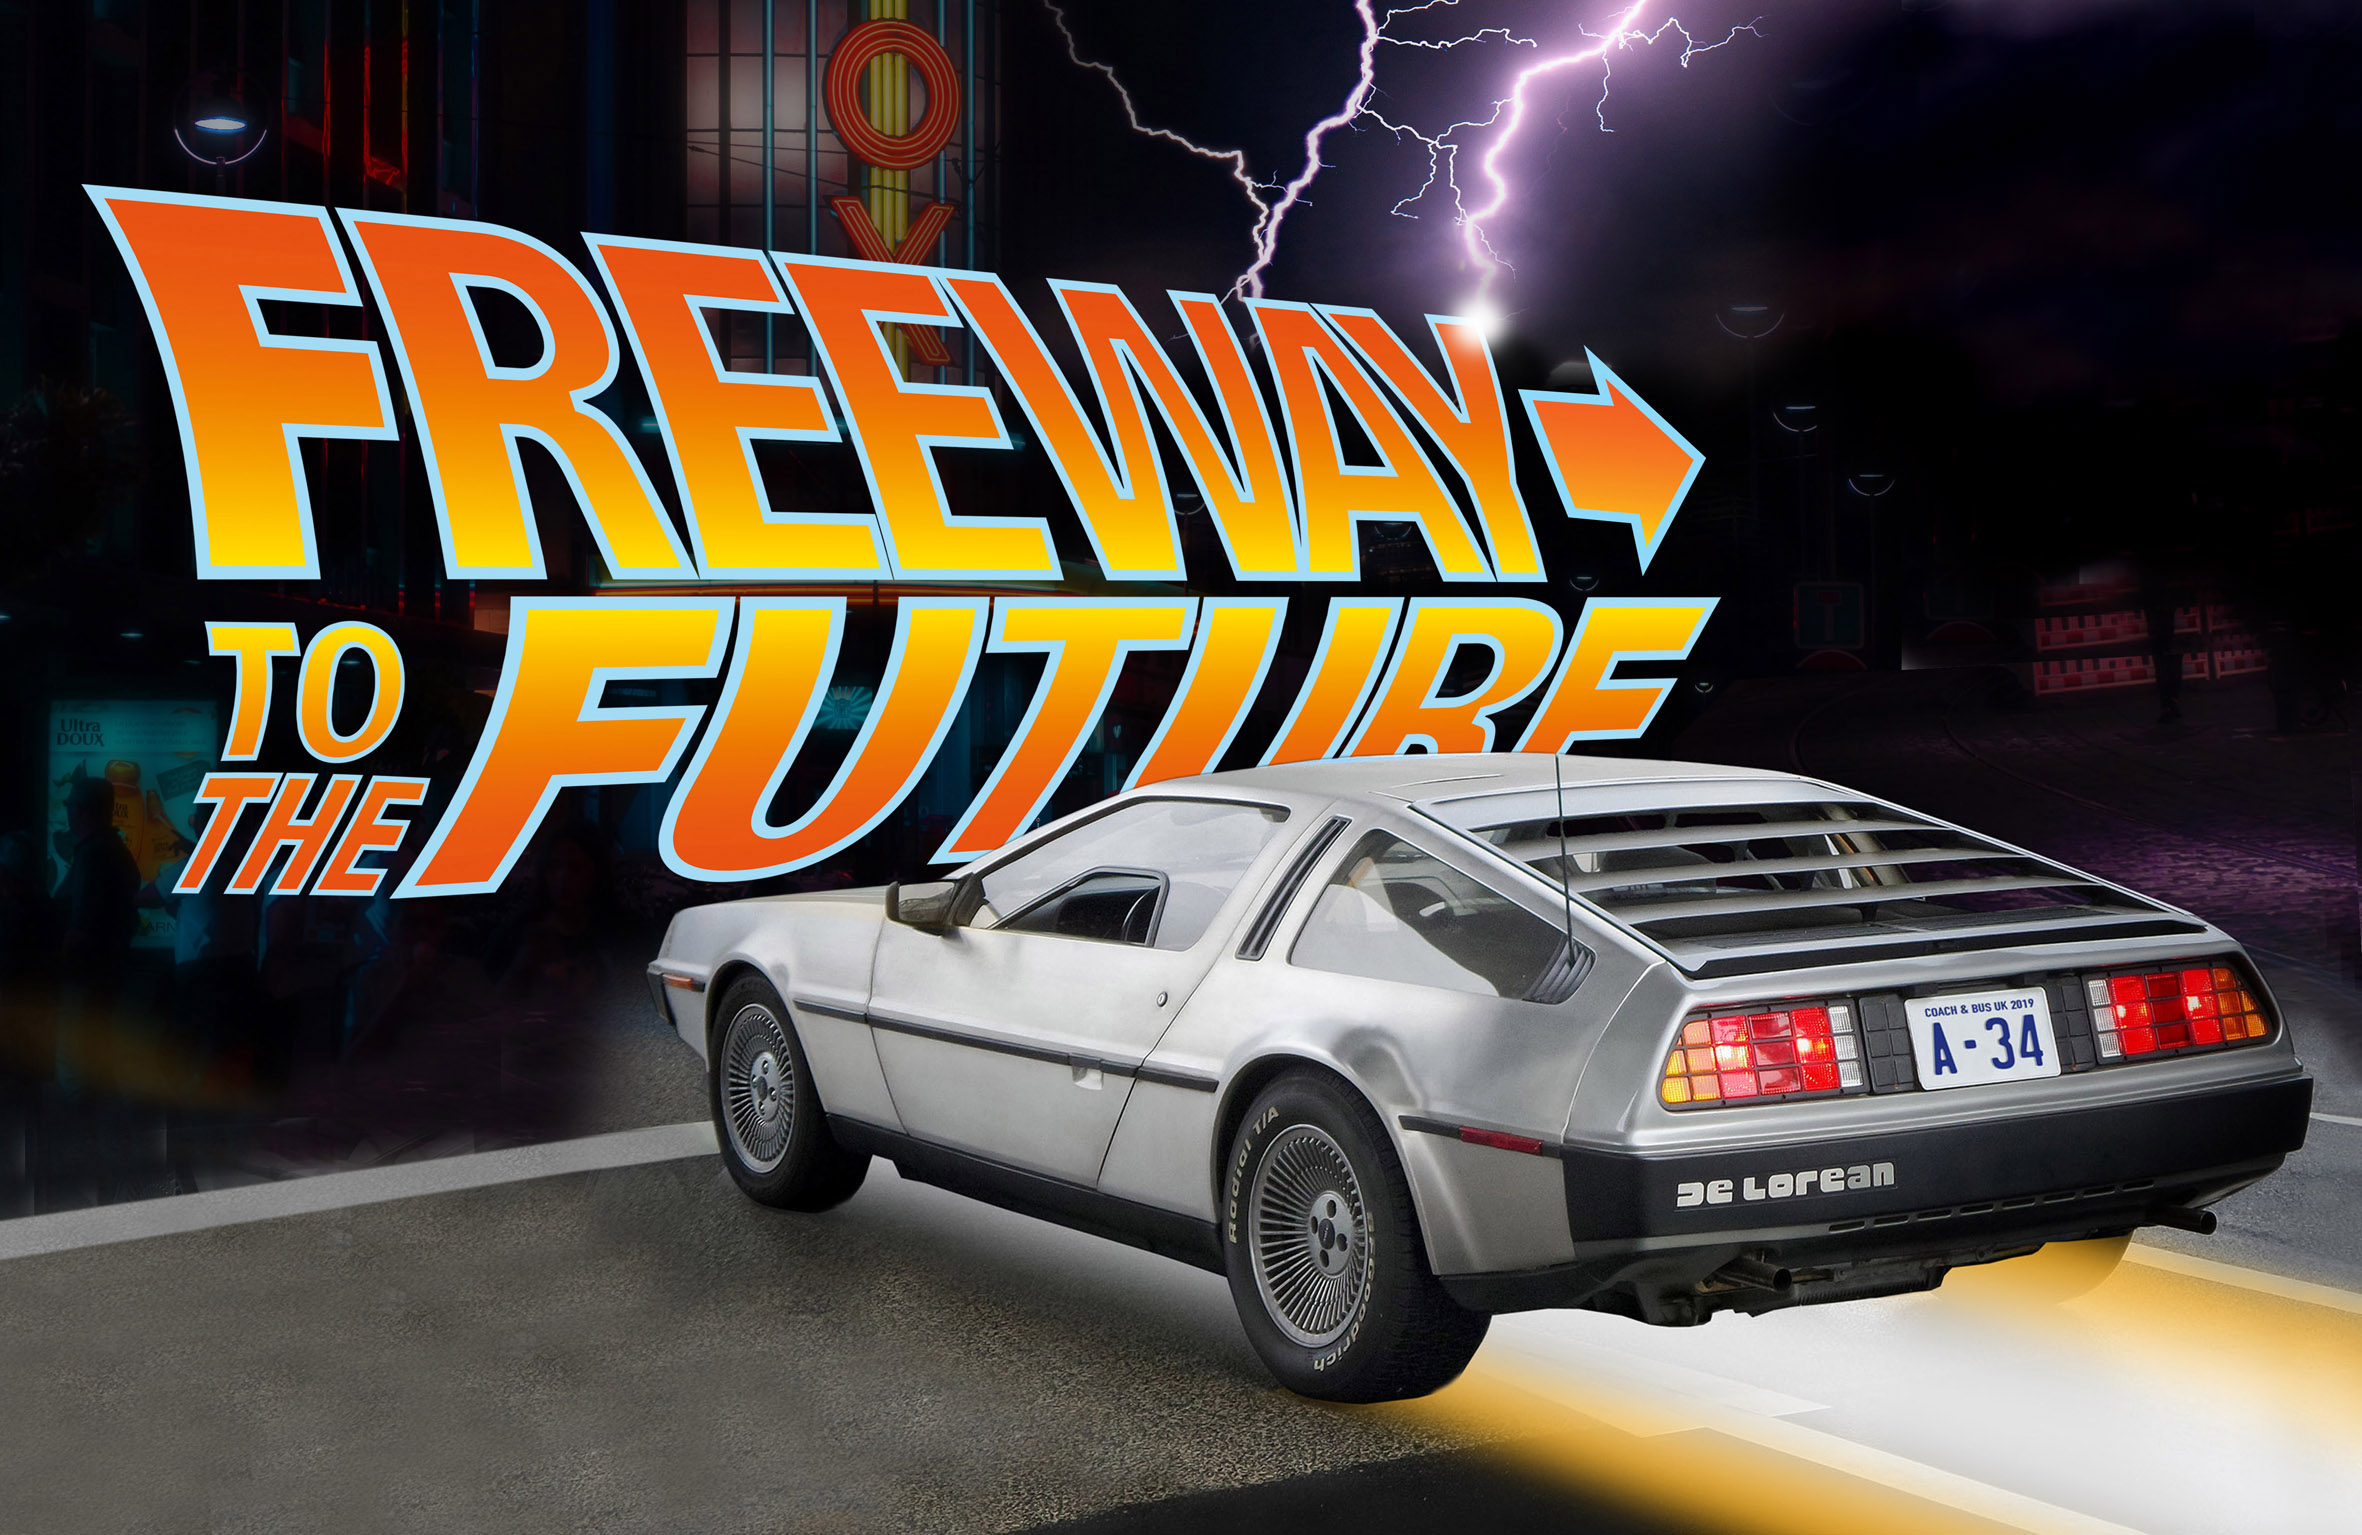 Coach & Bus UK 2019 Freeway are using a De Lorean sports car